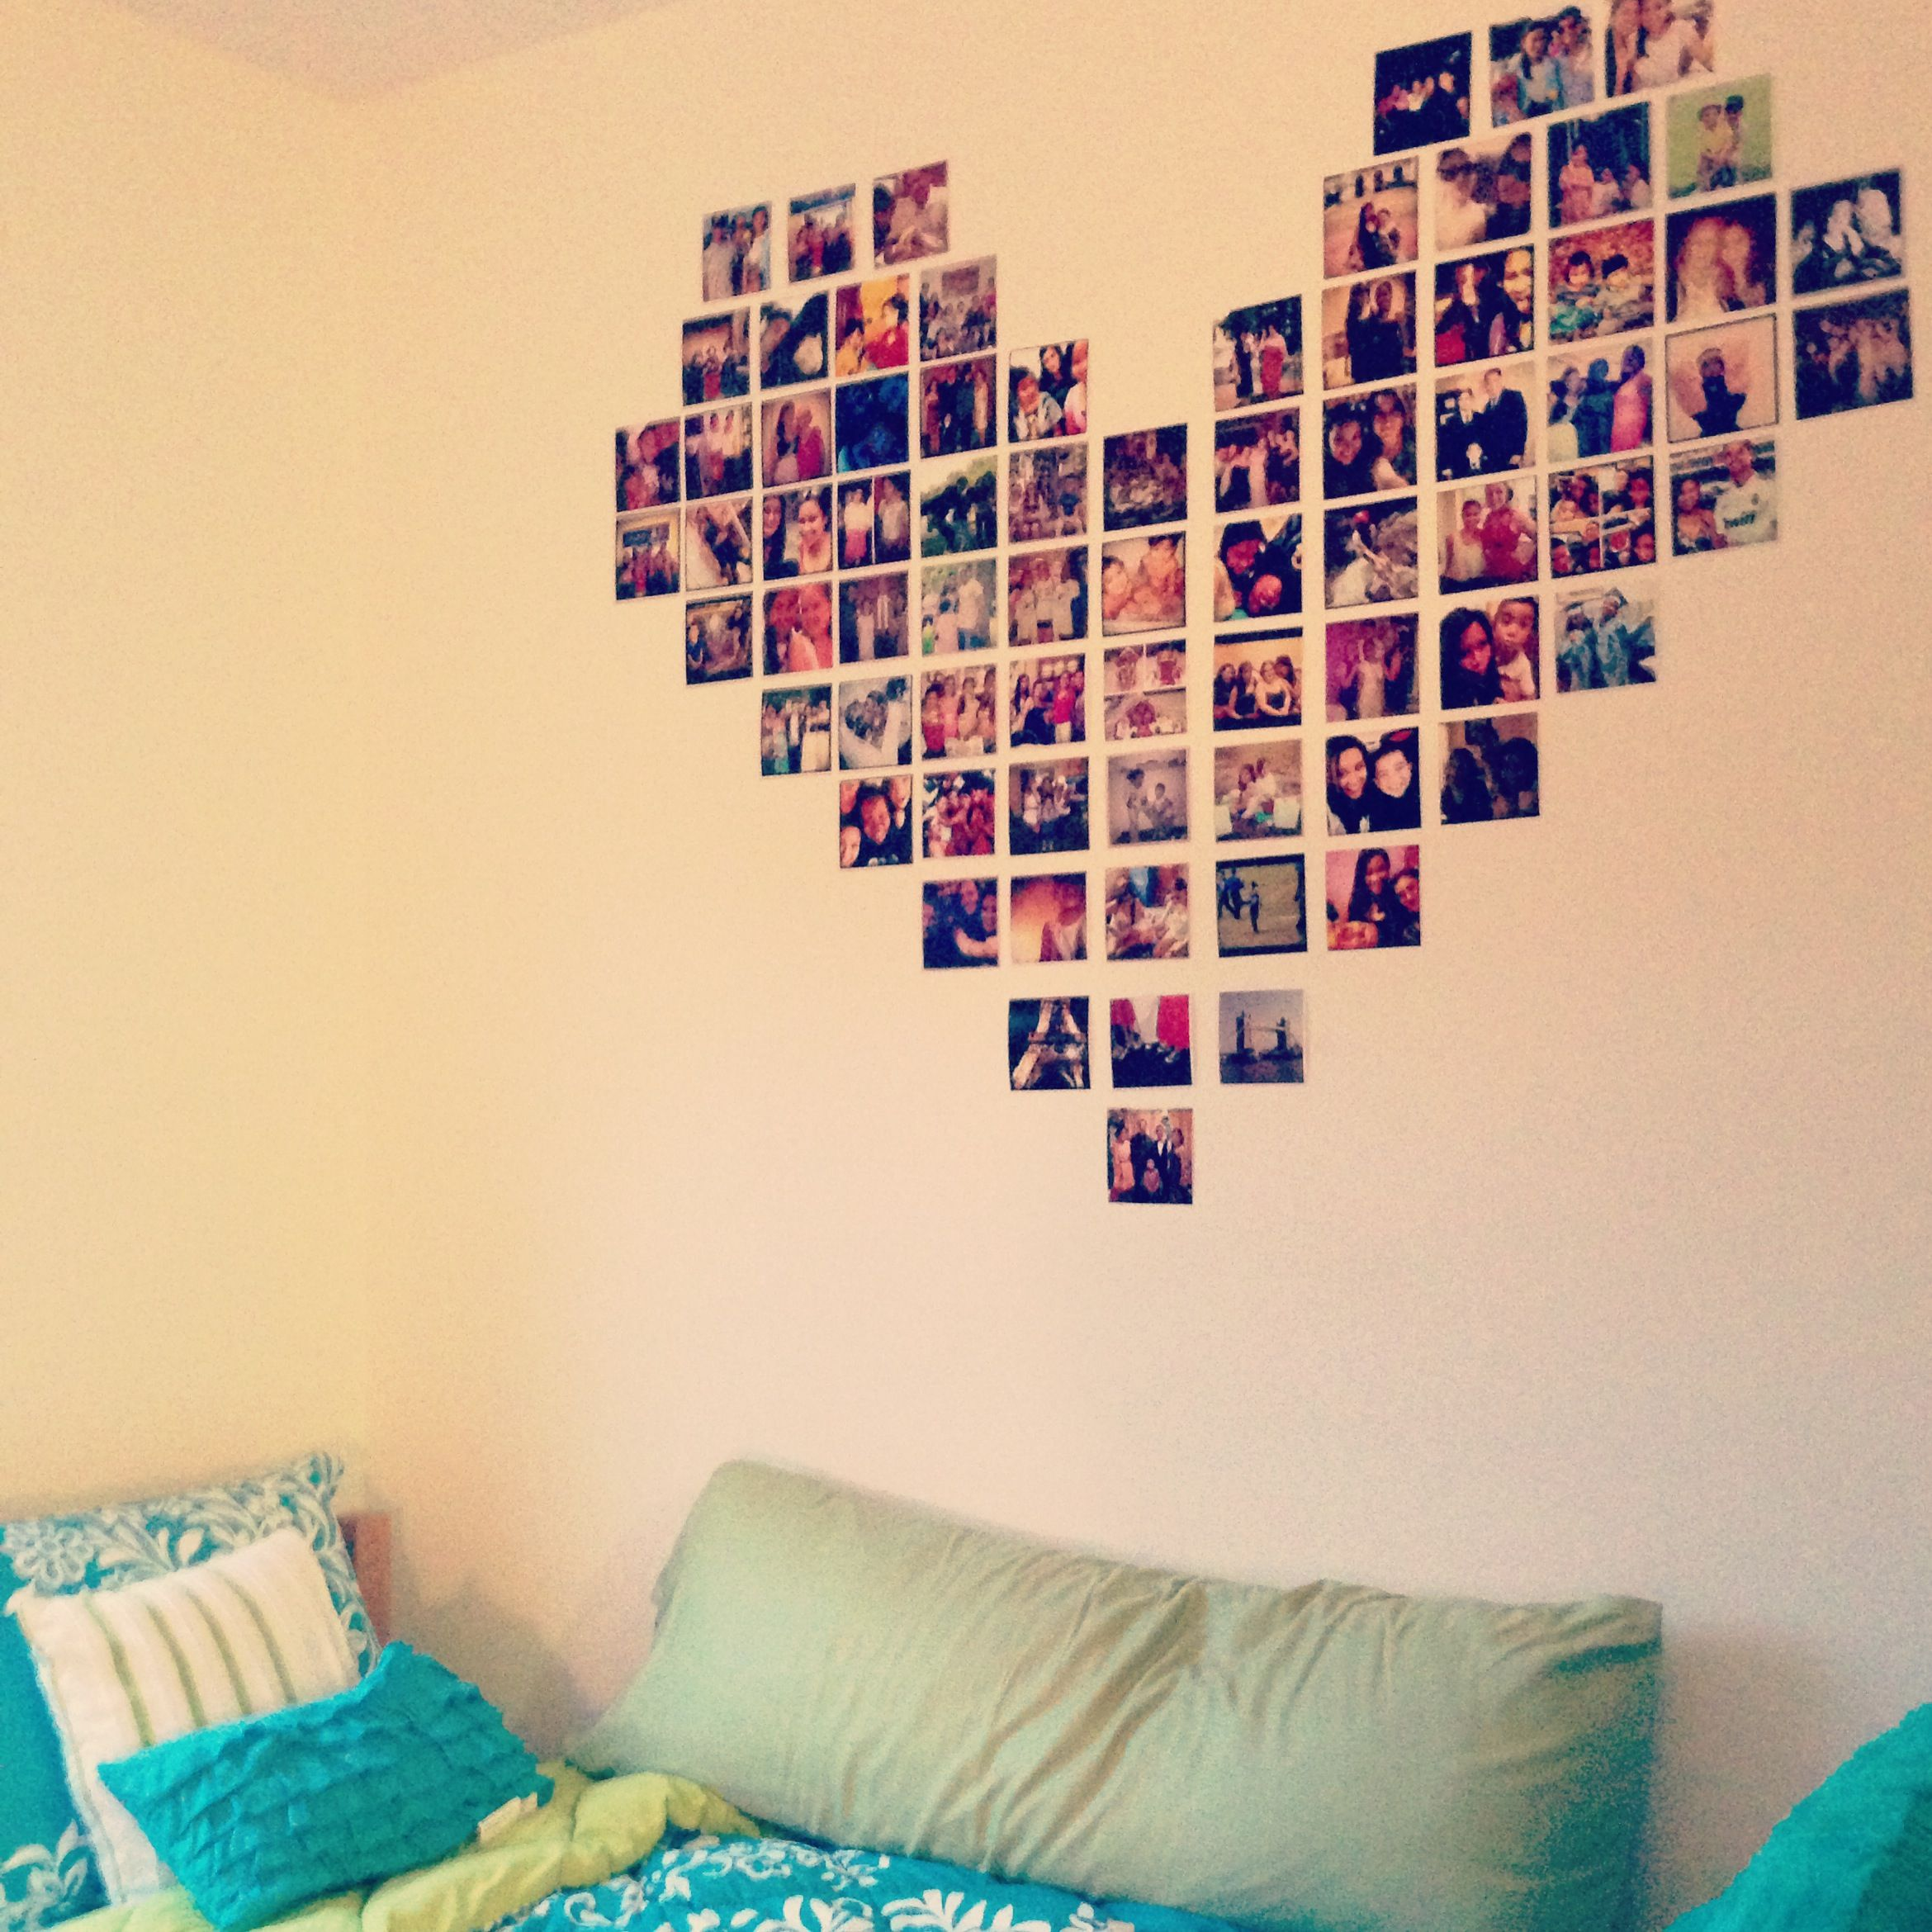 Dorm room photo collage (: | Ideas for my dorm | Pinterest | Dorm ...